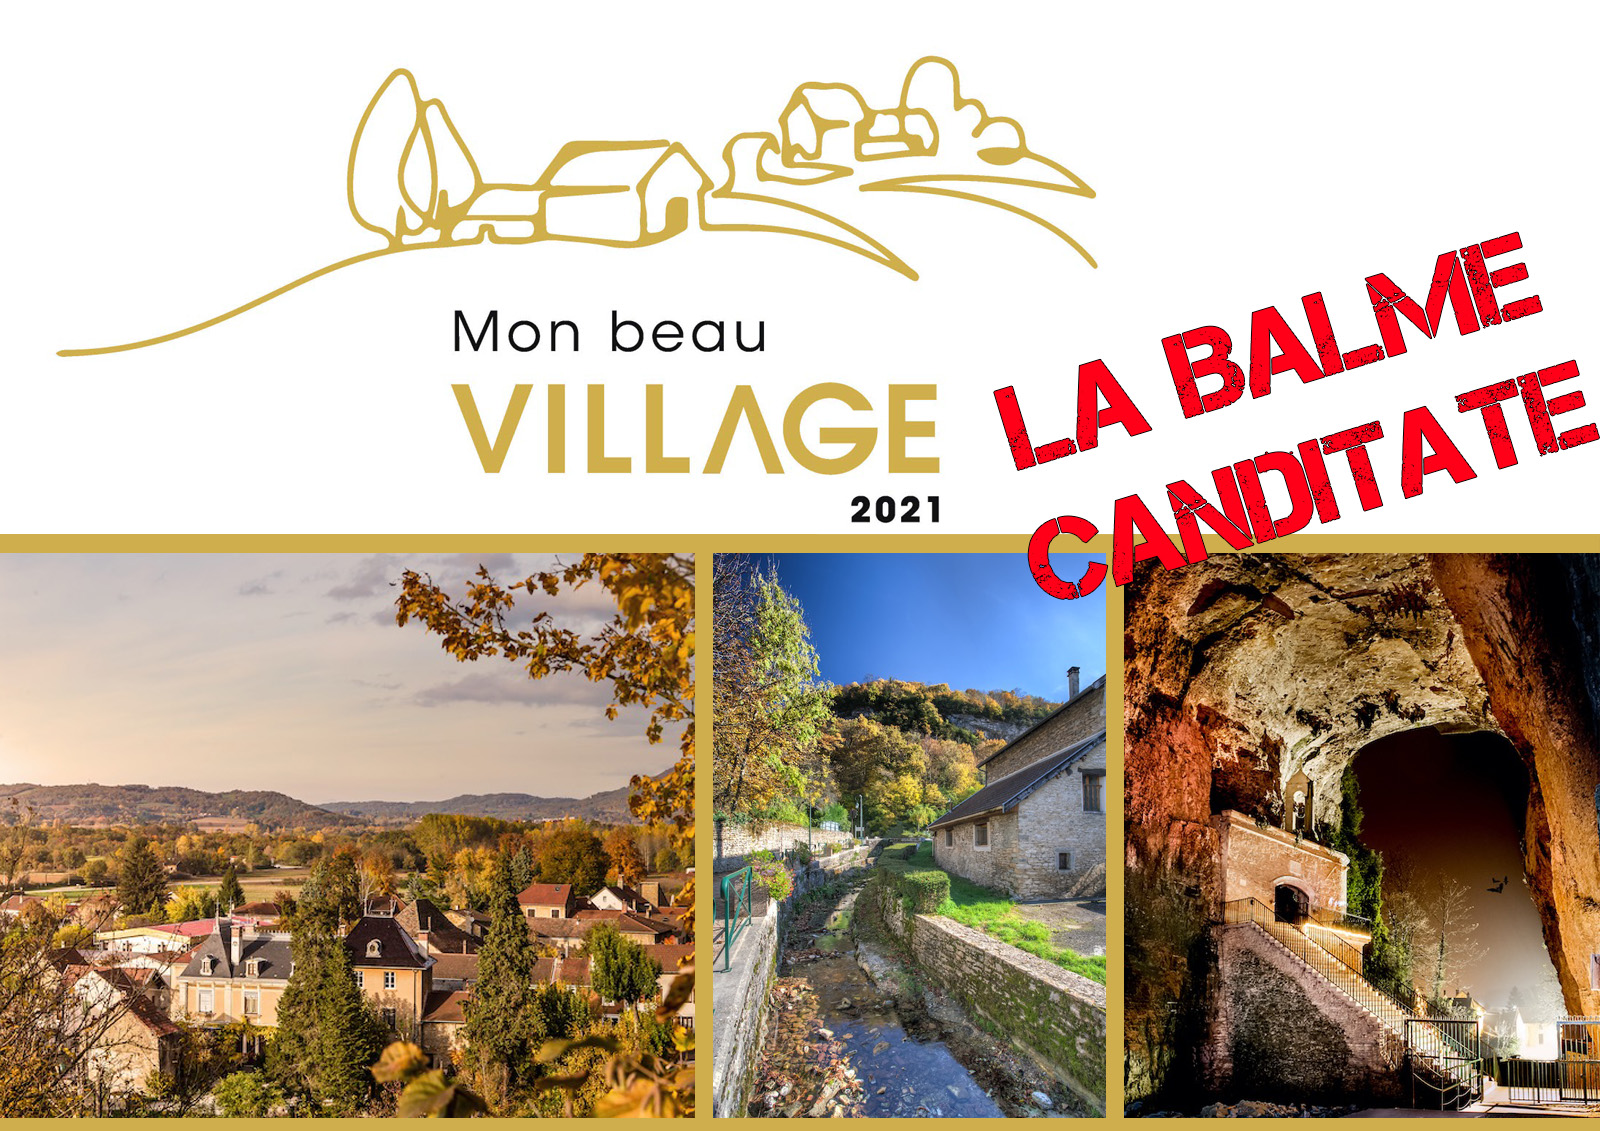 You are currently viewing Mon beau village 2021: La Balme candidate!